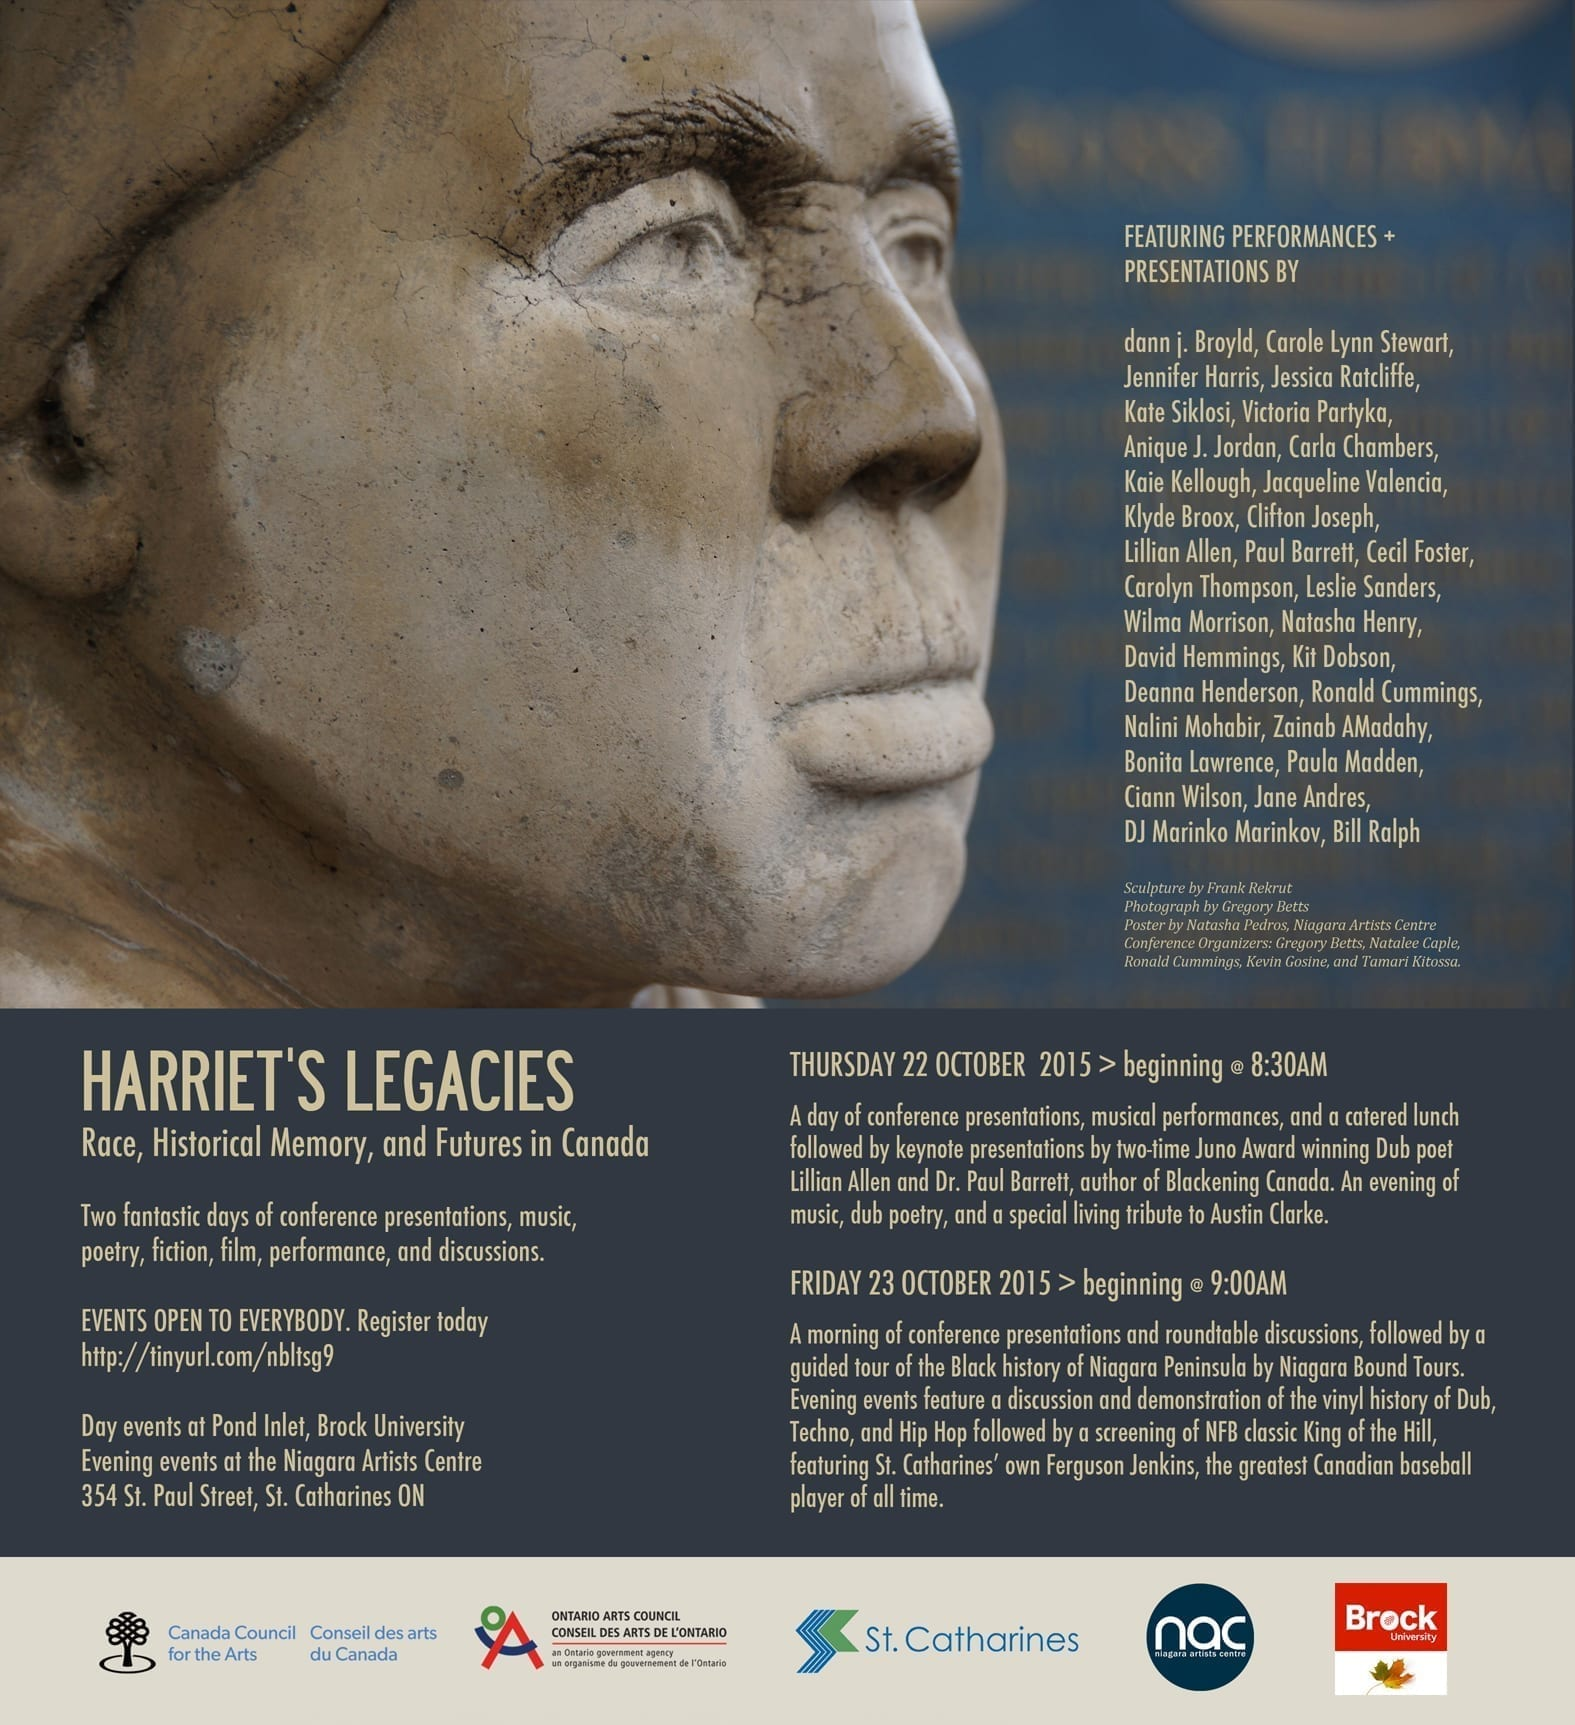 Harriet's Legacies: Race, Historical Memory and Futures in Canada